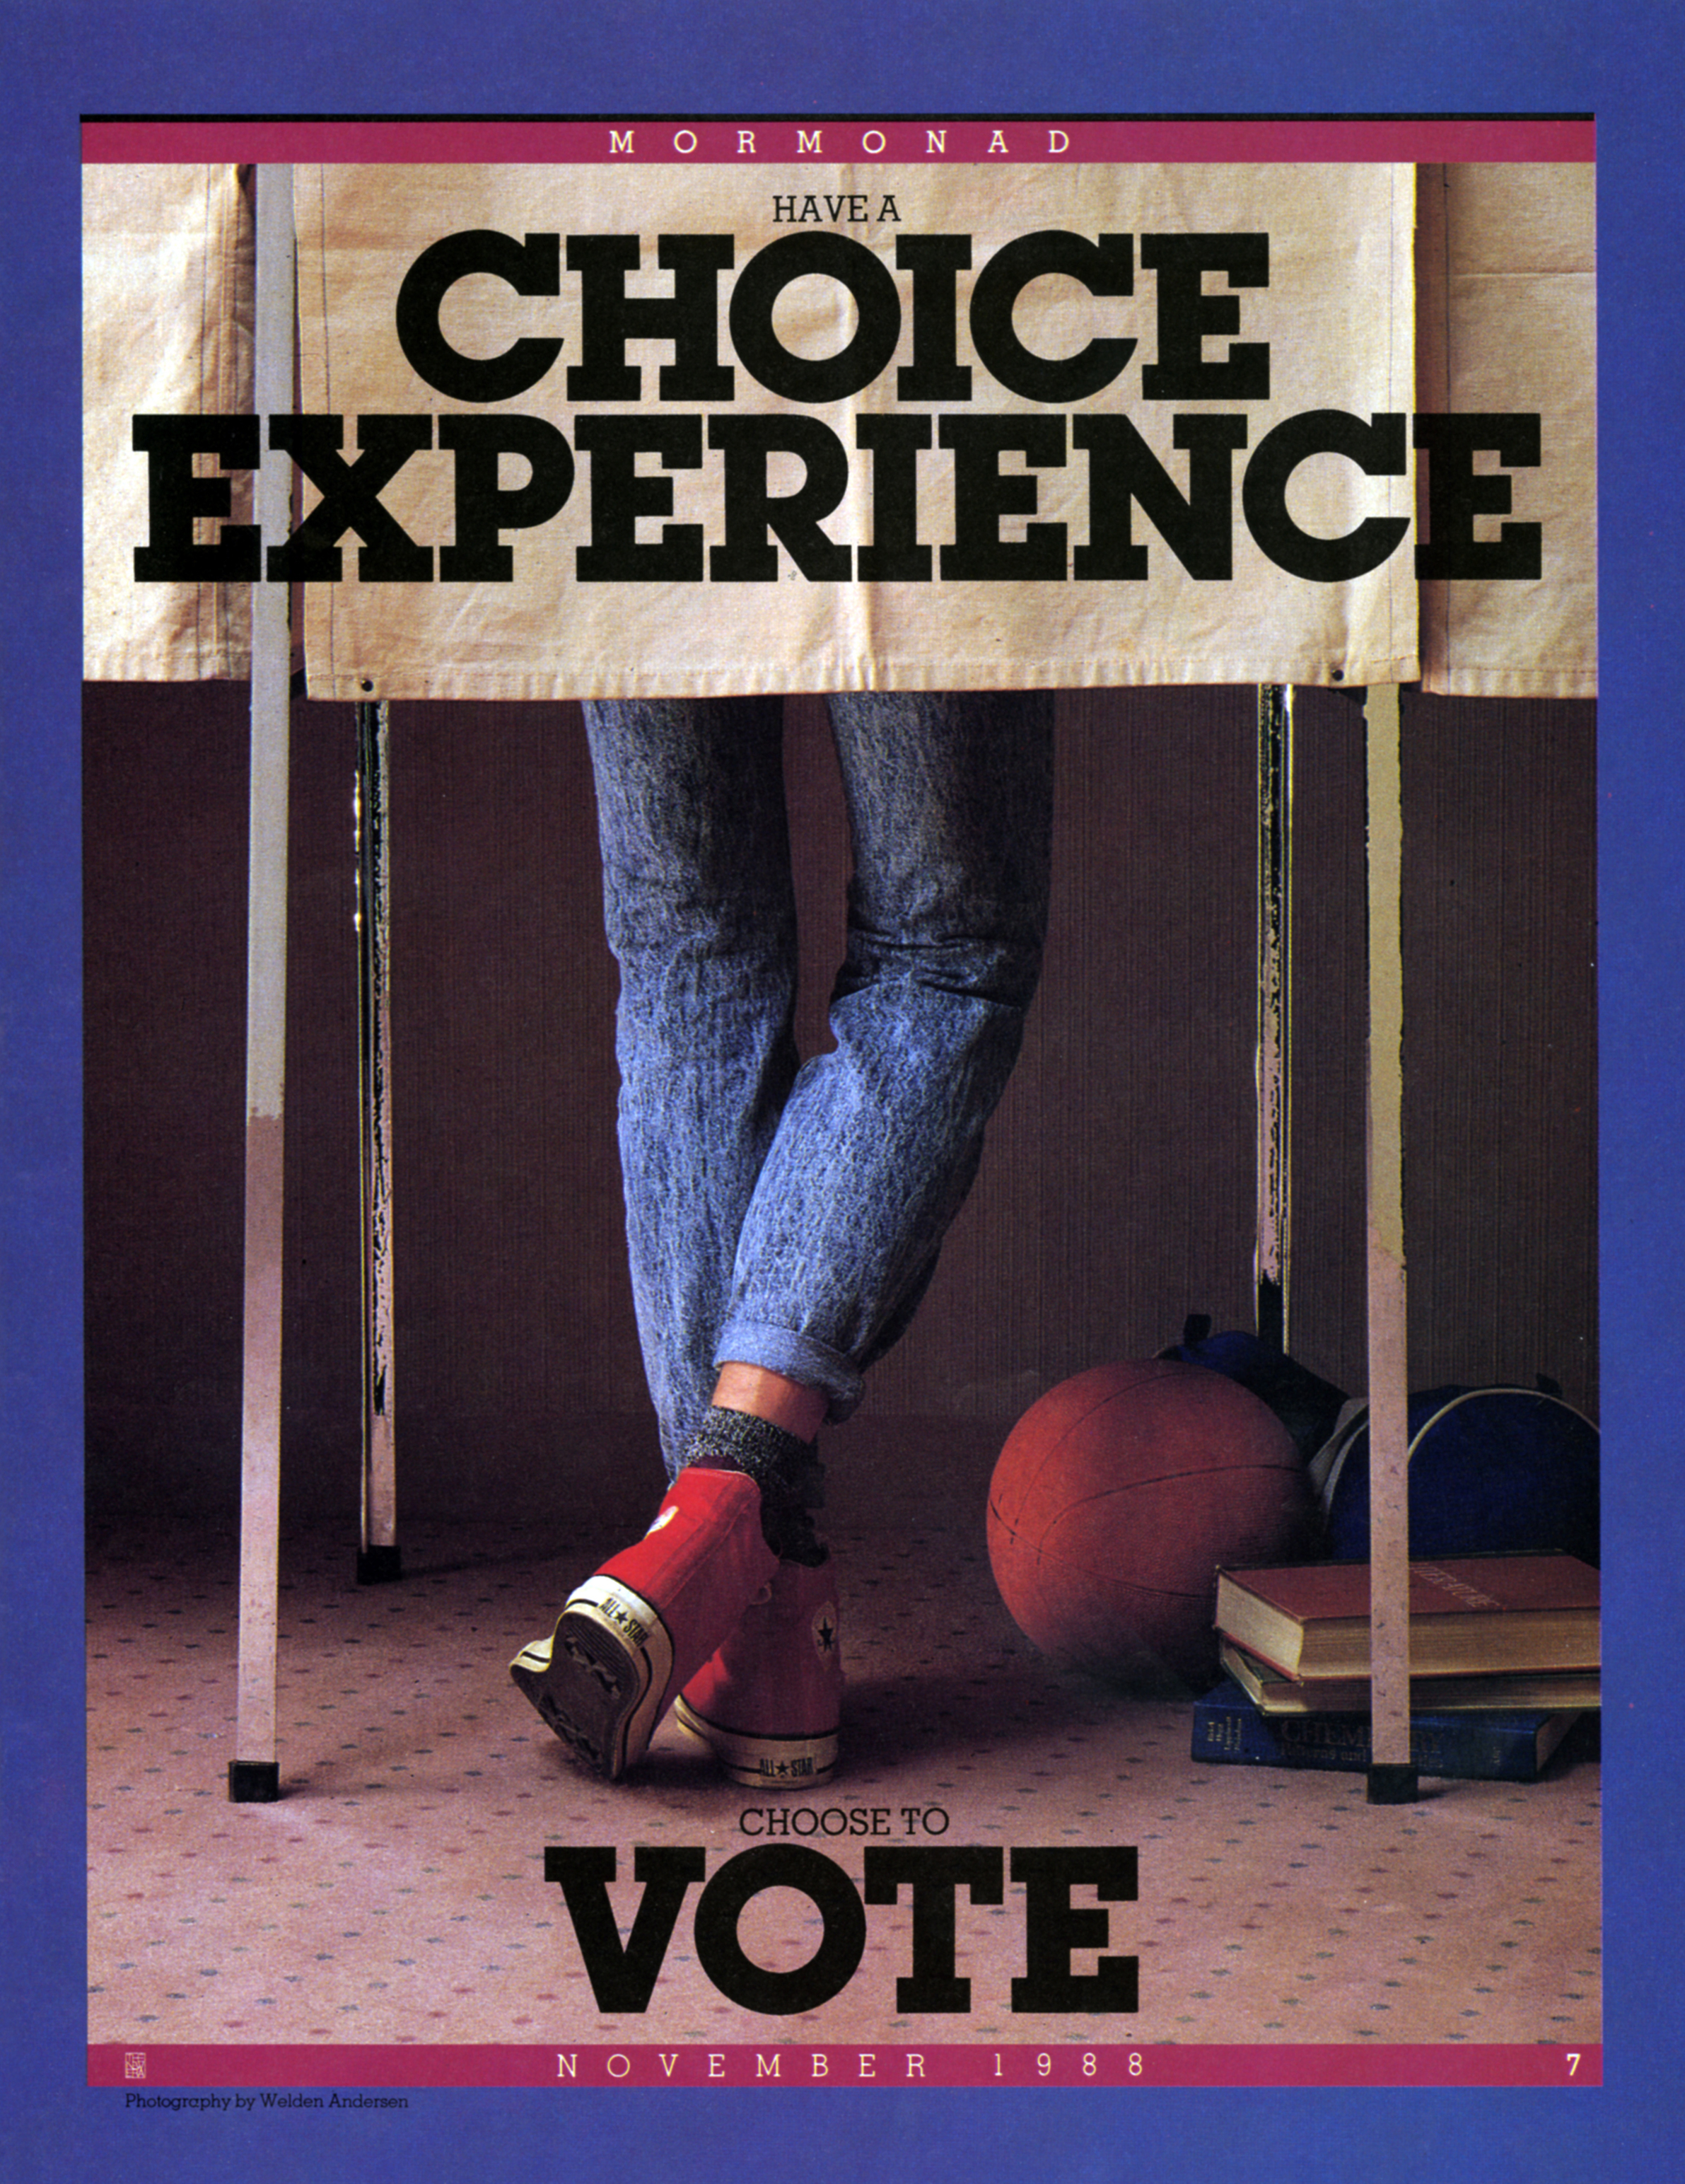 Have a Choice Experience. Choose to Vote. Nov. 1988 © undefined ipCode 1.